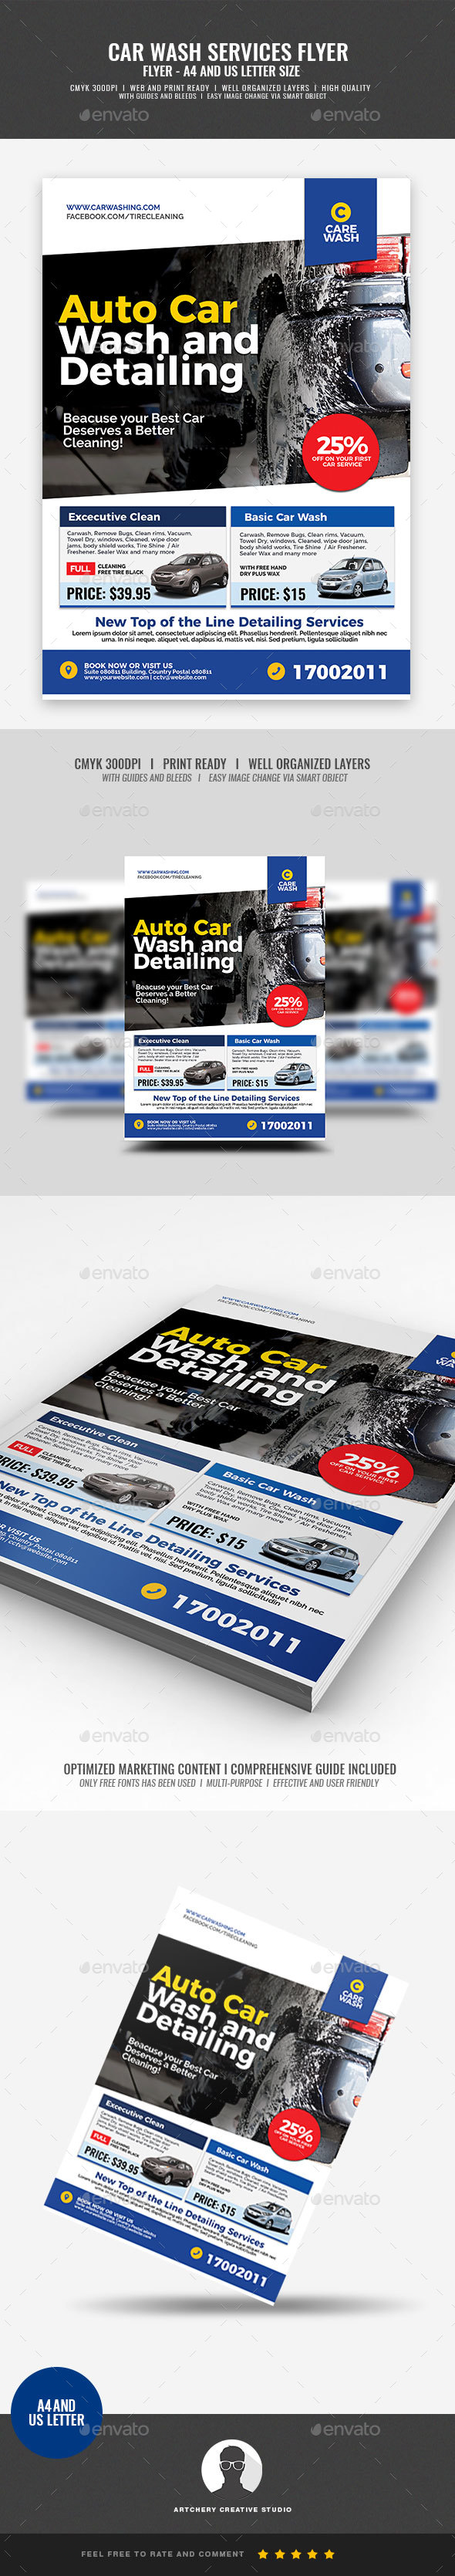 Car Wash Services Promotional Flyer - Corporate Flyers